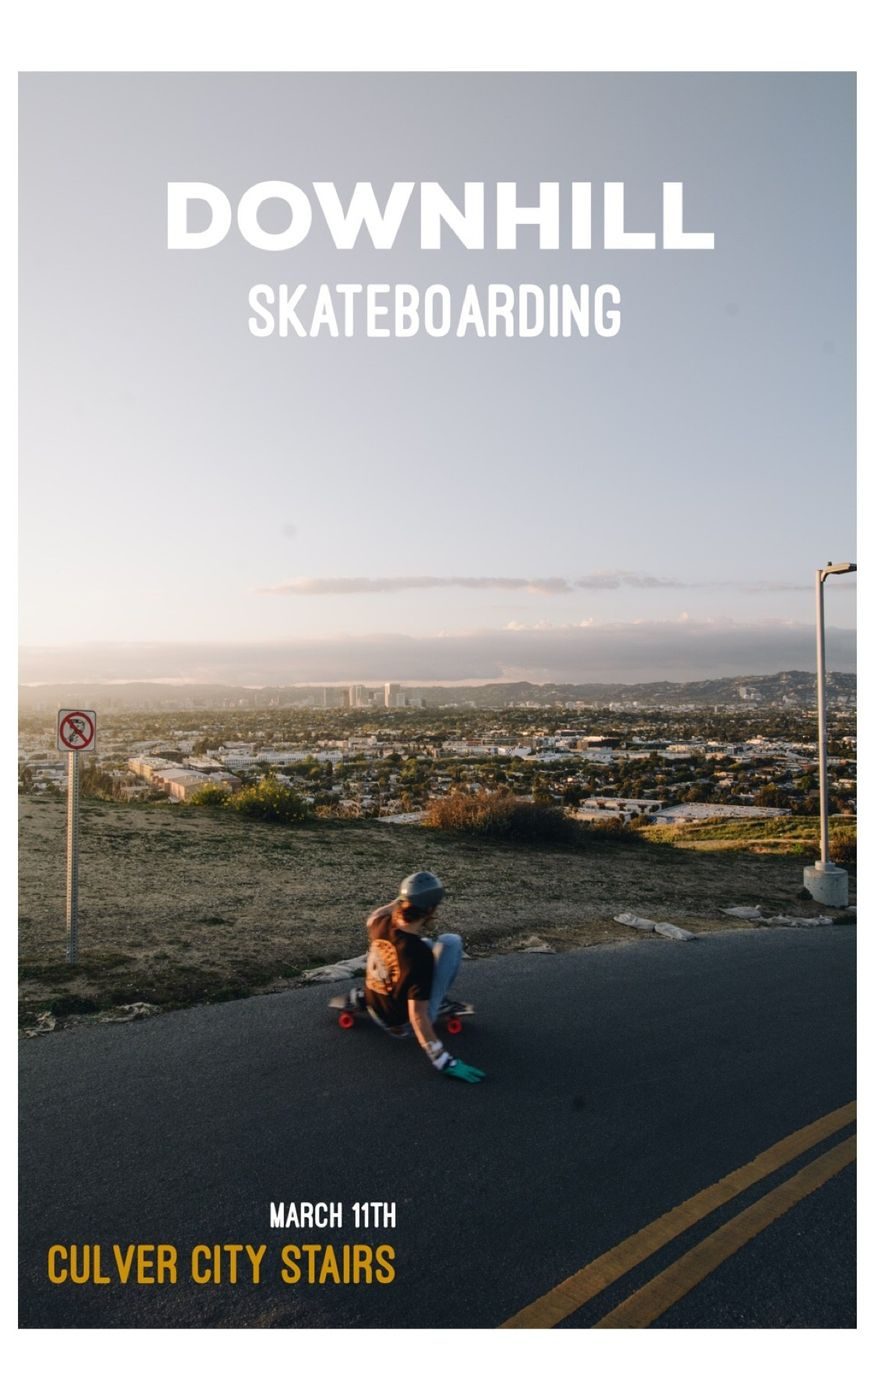 The world of downhills skateboarding in Los Angeles.